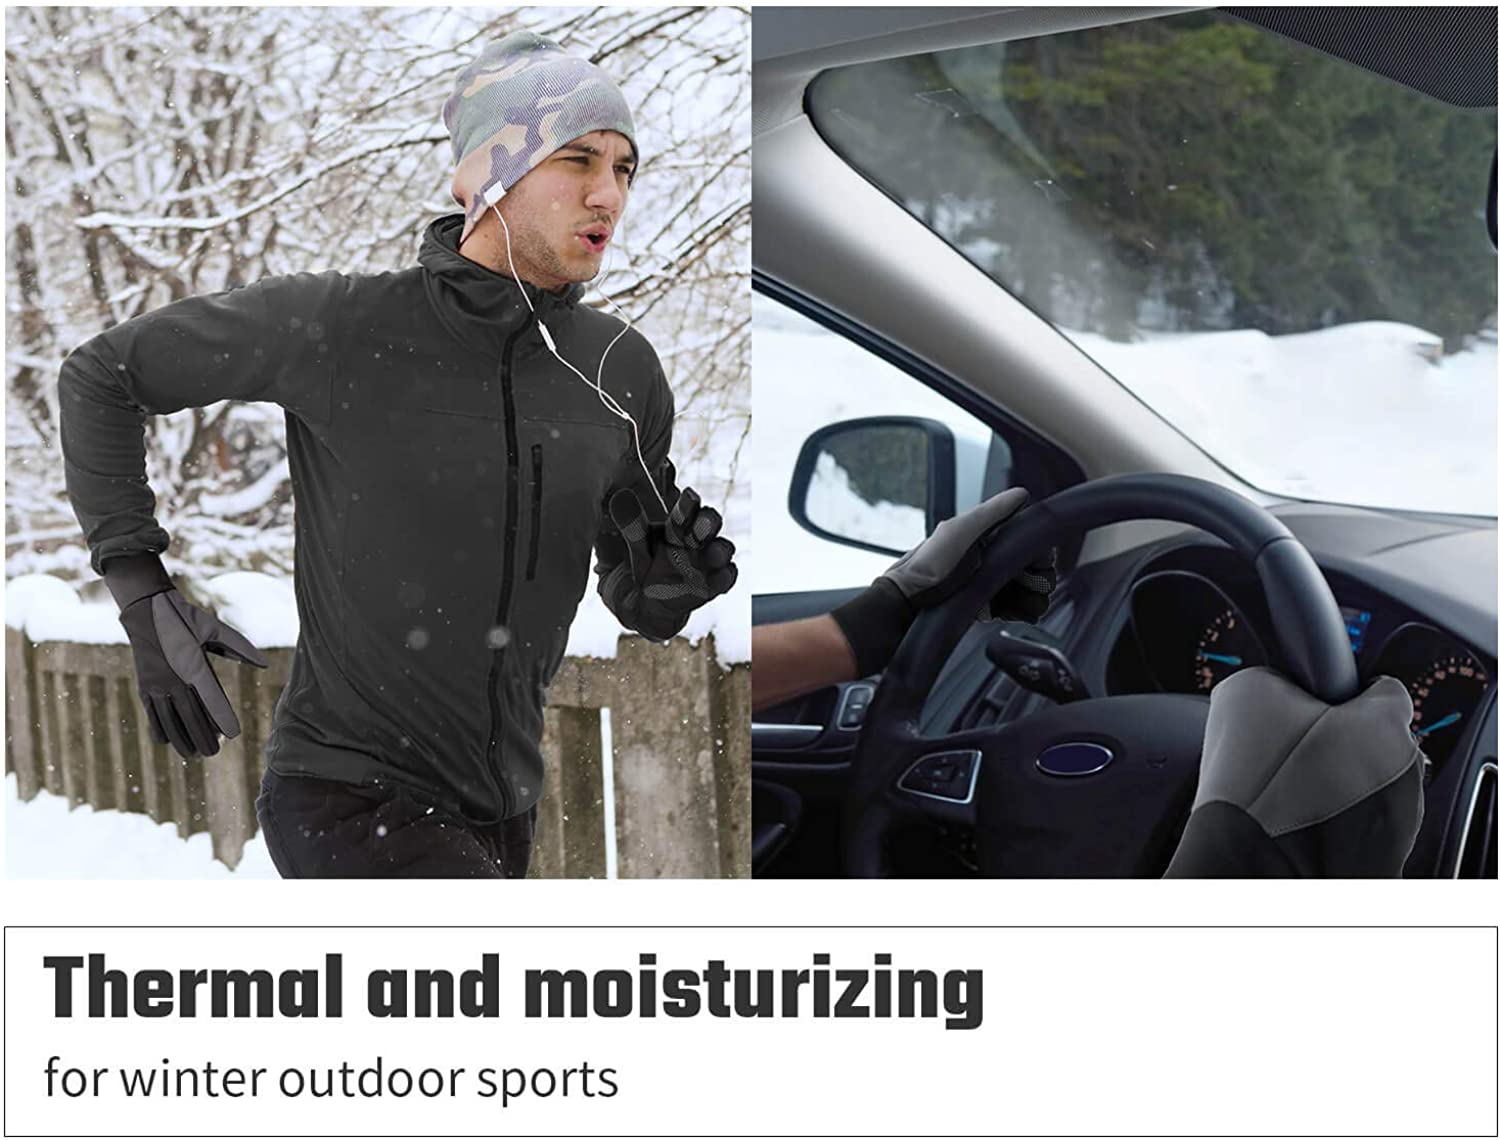 Windproof Water Resistant for Driving//Cycling//Running//Snow Skiing in Cold Weather for Women and Men Black-Gray,X-Large Cold Weather Gloves with Touch Screen Fingers Winter Thermal Glove